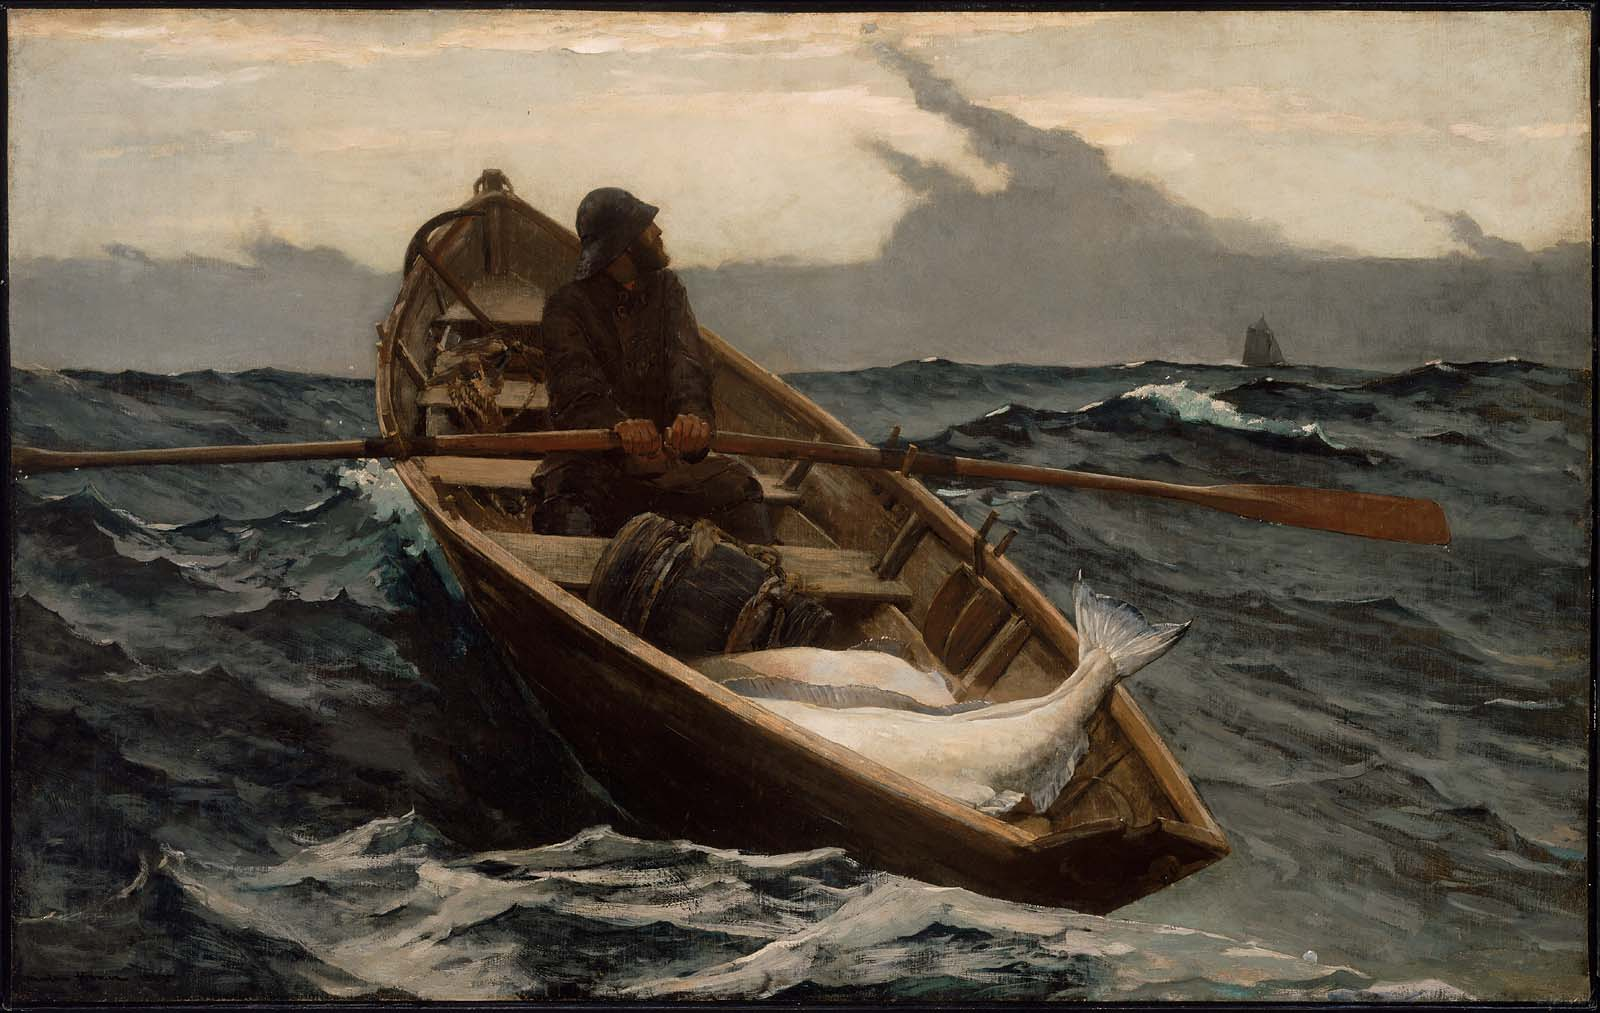 Winslow Homer's painting 'The Fog Warning' from the Museum of Fine Arts, Boston